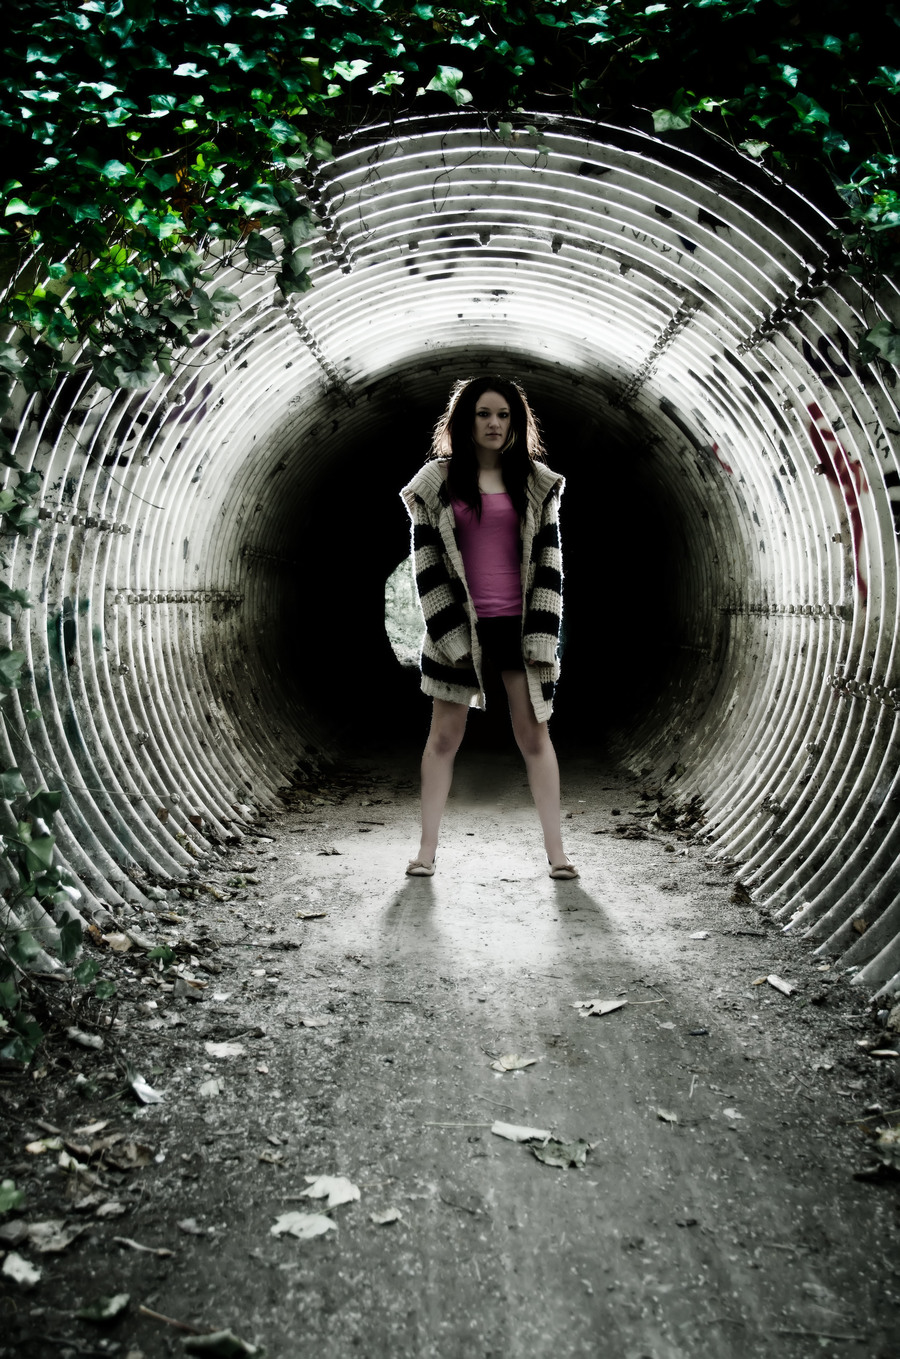 Fashion tunnel / Photography by SidekickPhoto / Uploaded 2nd August 2020 @ 11:49 AM